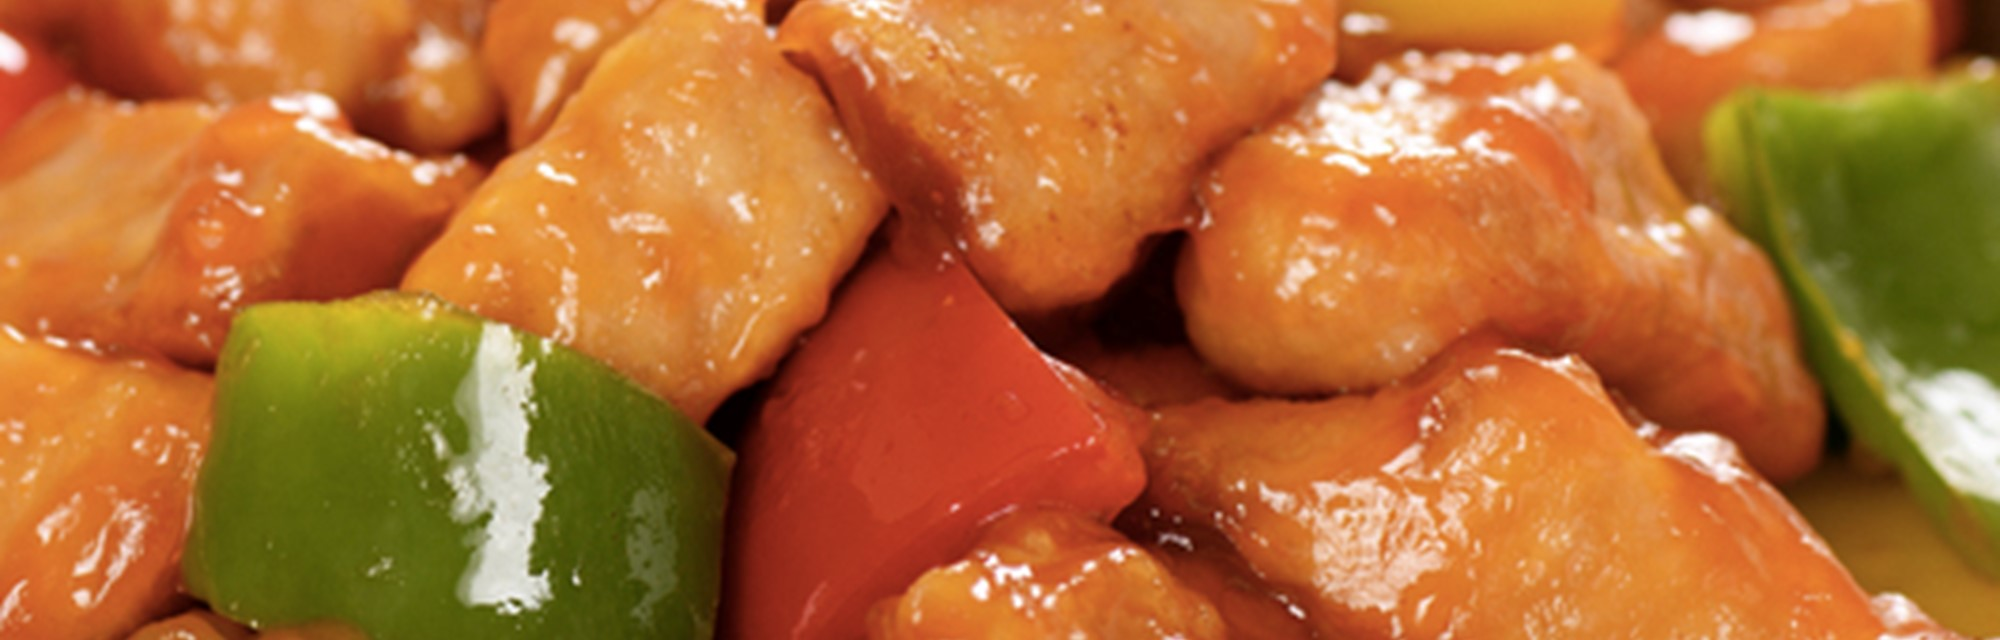 Sweet and sour pork - Sweetandsourpork